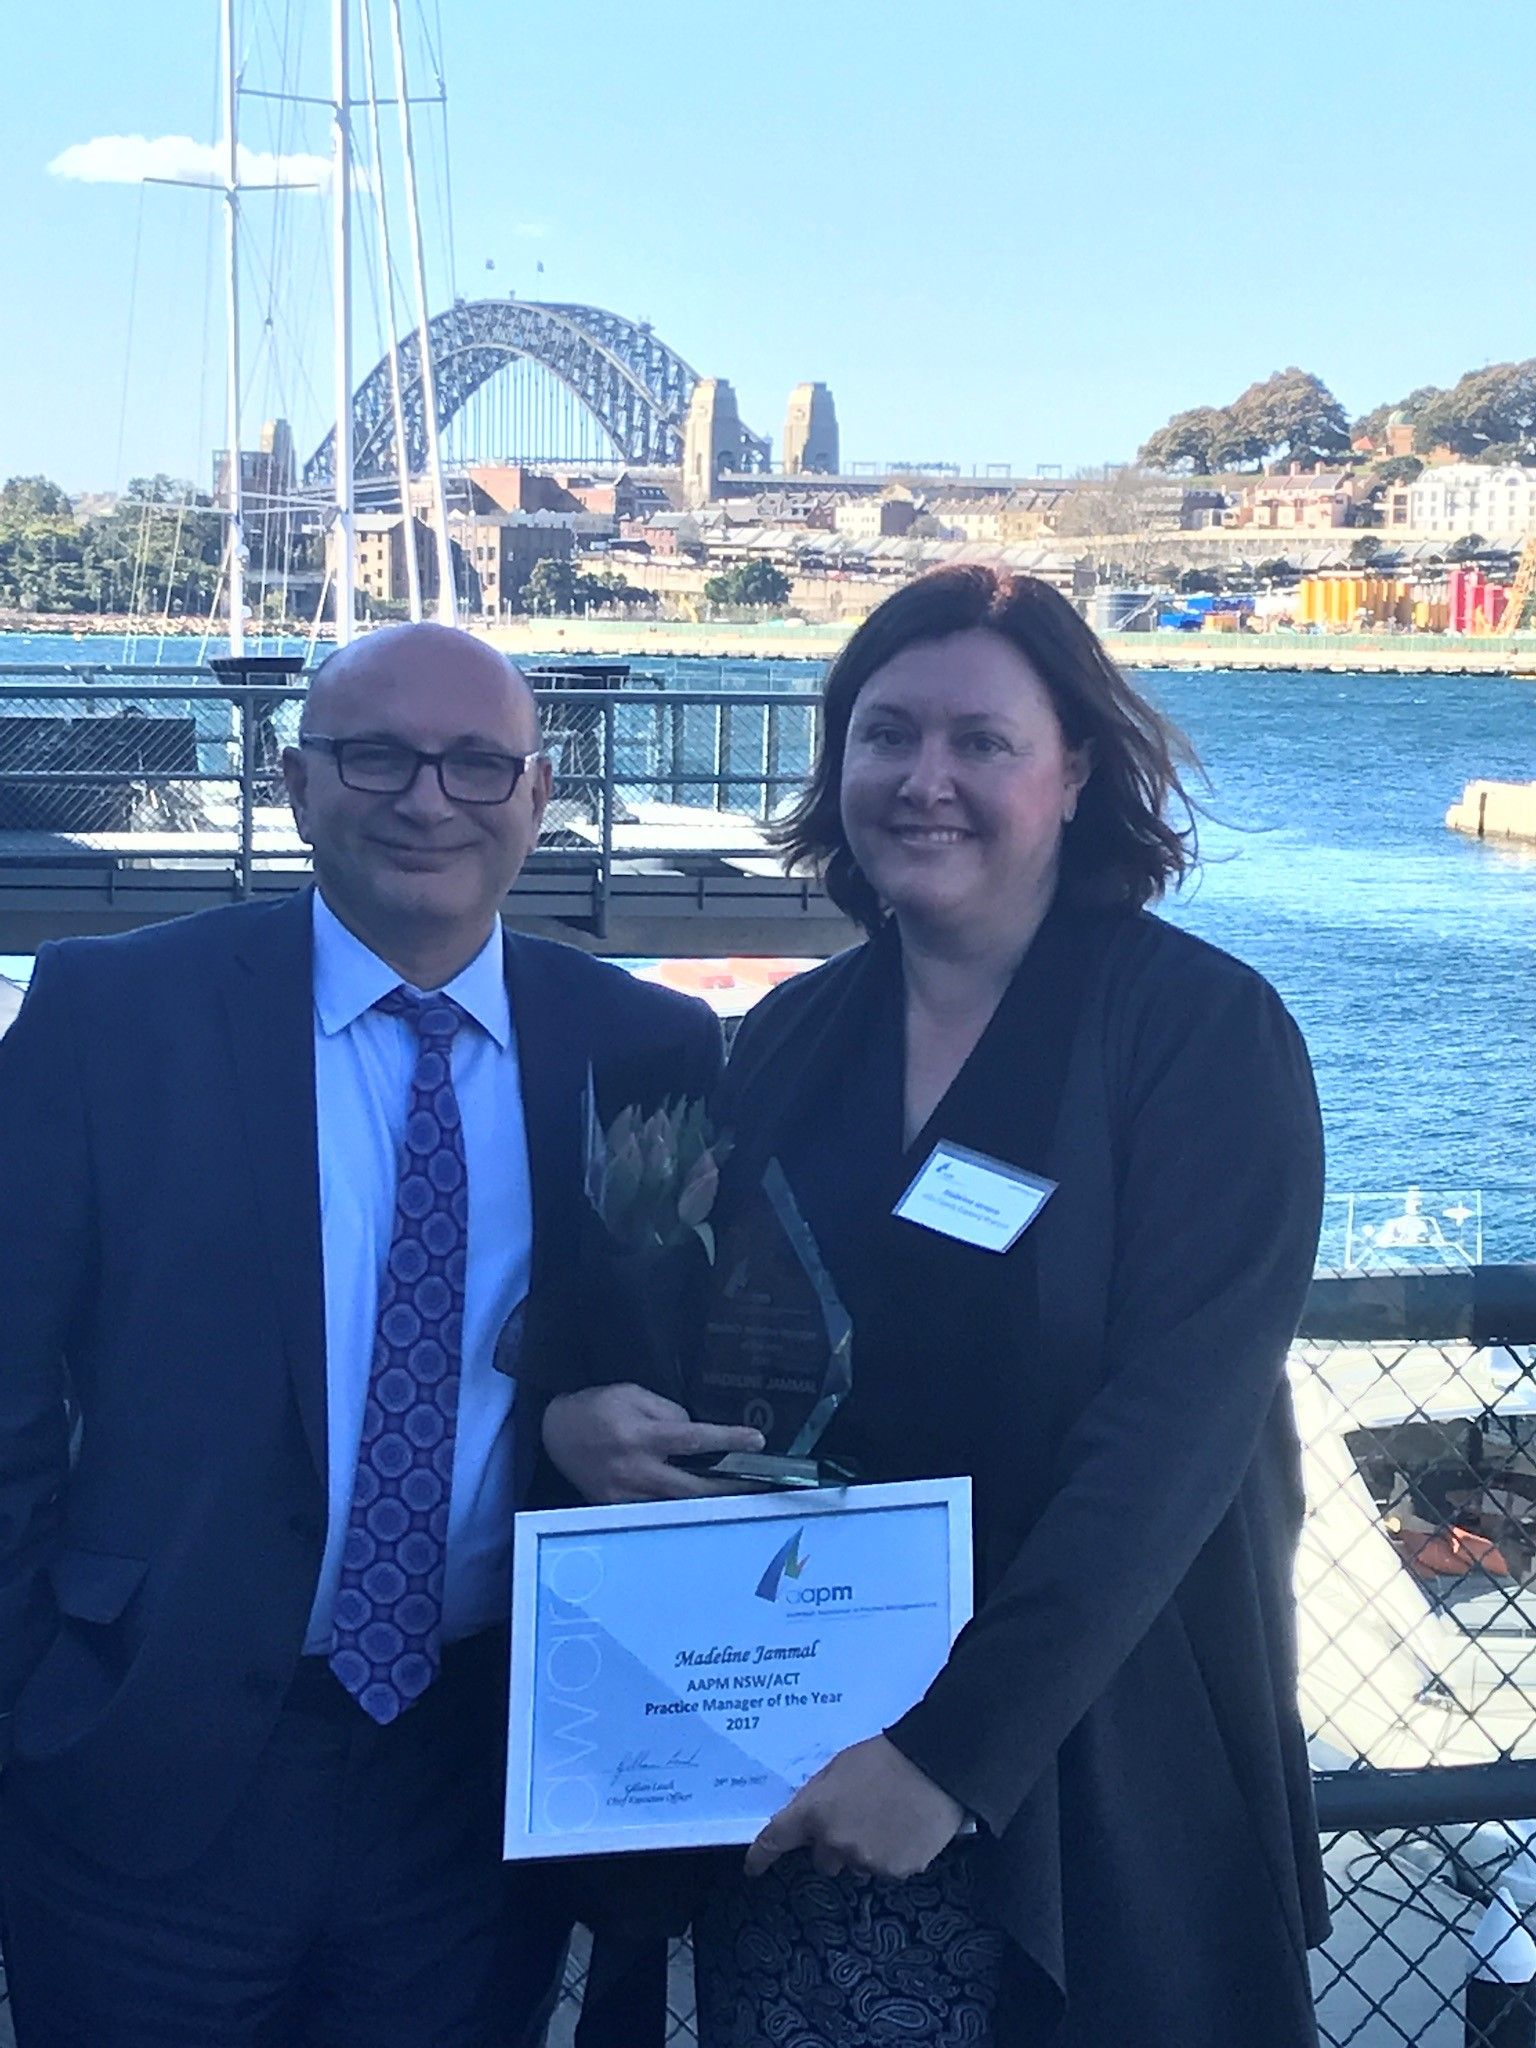 Madeline Jammal- Practice Manager of the Year 2017 NSW/ACT - We are pleased to announce that Madeline Jammal was awarded AAPM NSW/ACT Practice Manager of the Year 2017.